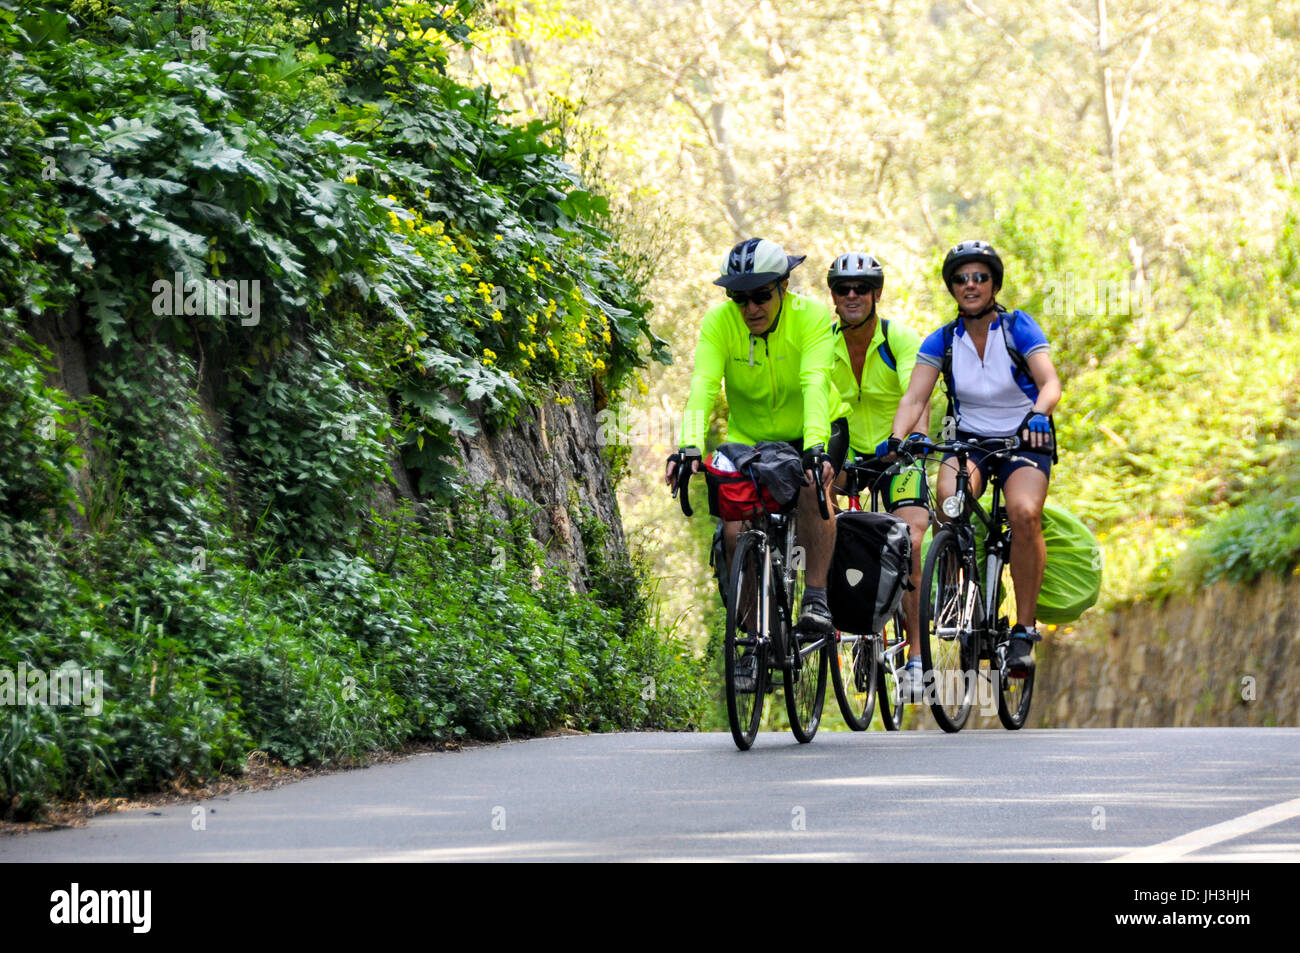 three-touring-cyclists-riding-their-bicycles-on-a-country-road-in-JH3HJH.jpg